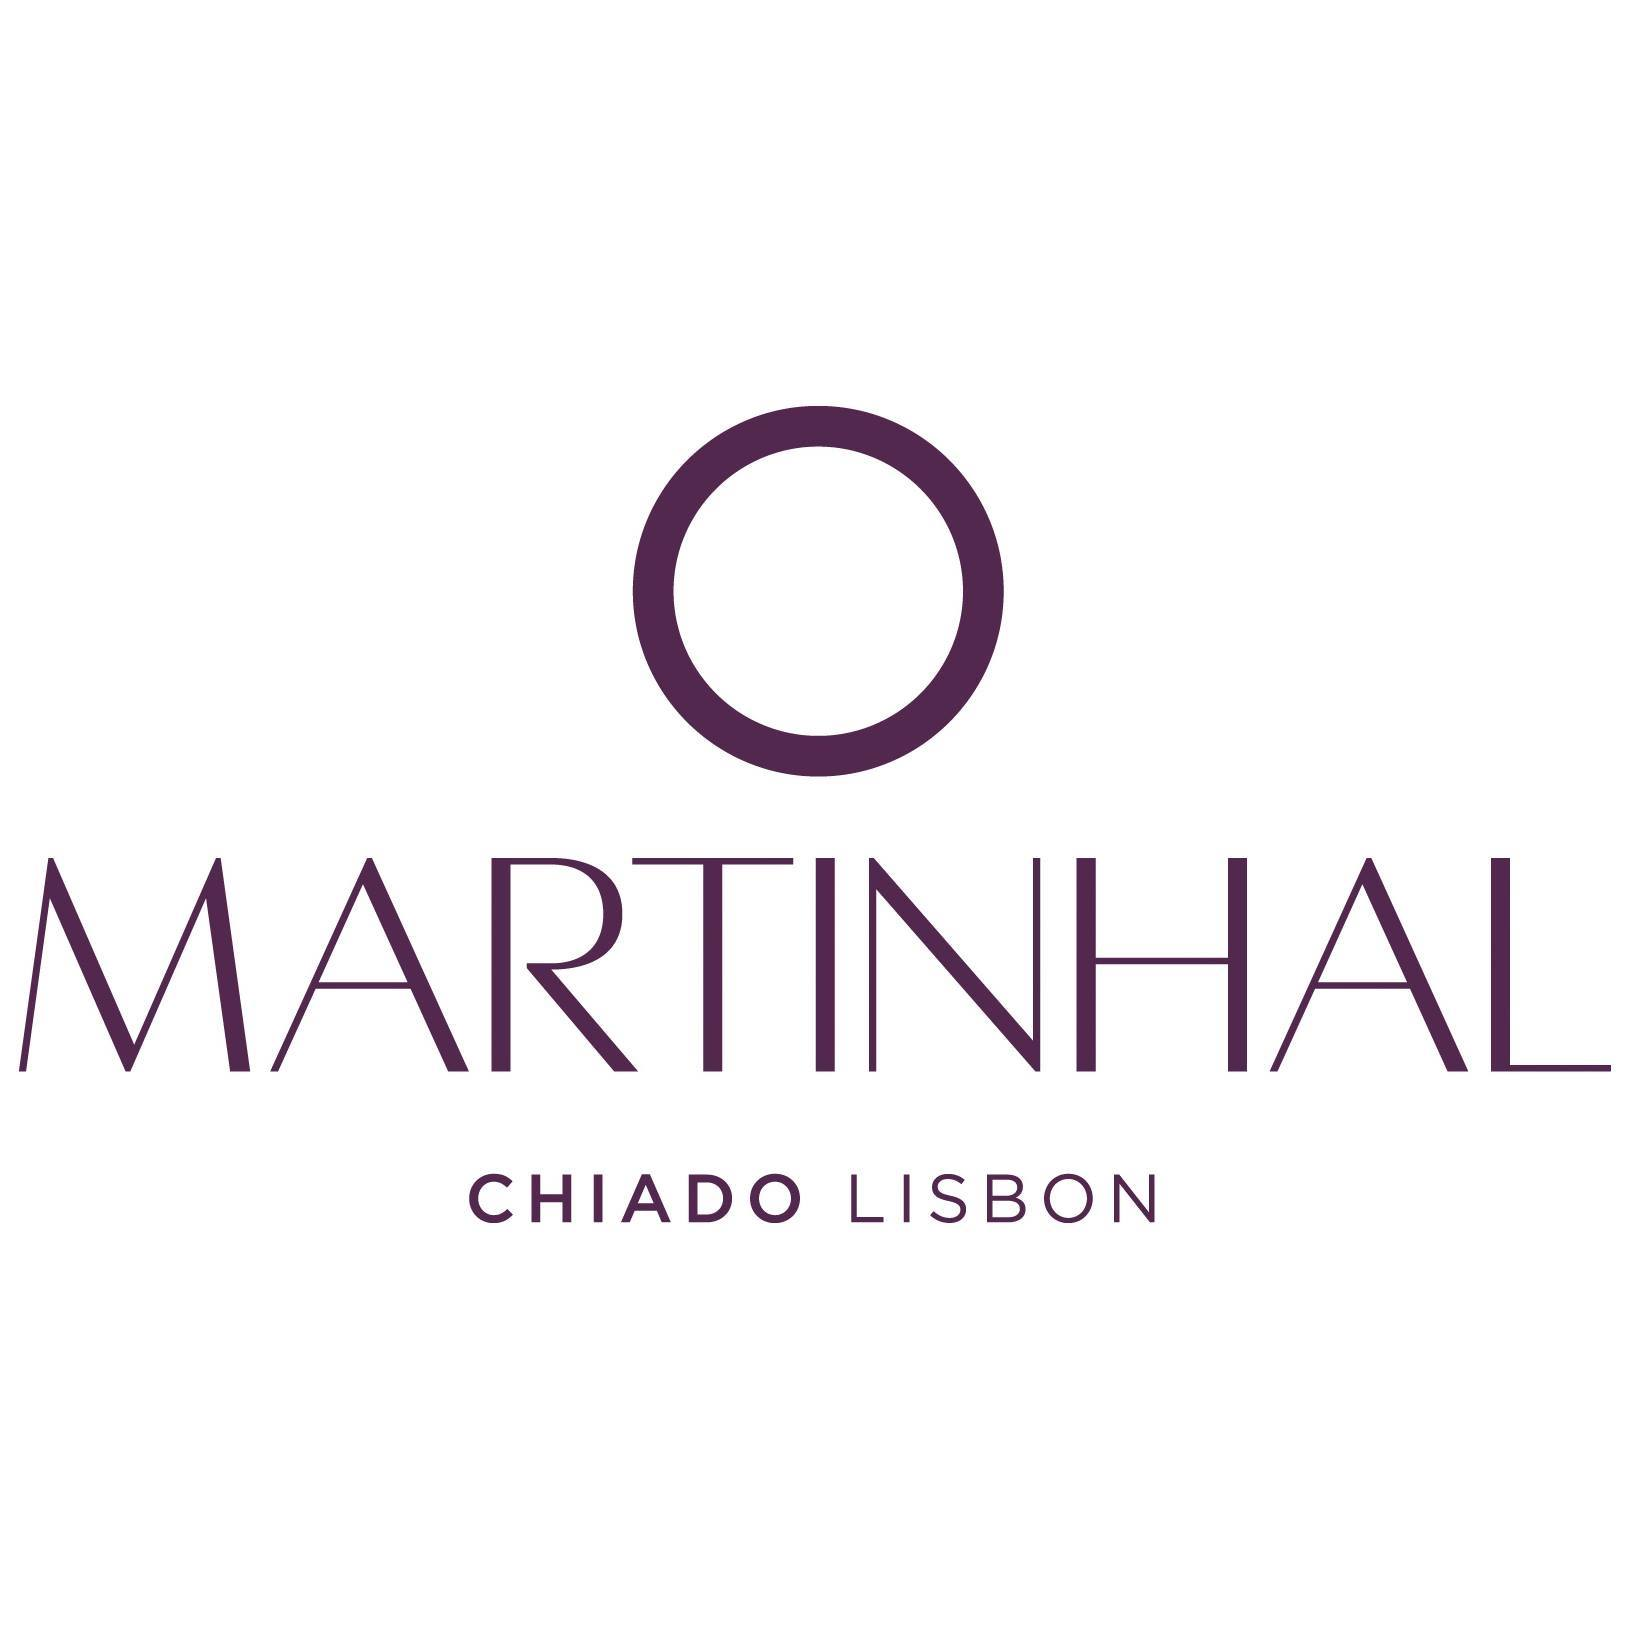 Family Friendly City-Centre Hotel Martinhal Chiado - The worlds first city-centre elegant family hotel in the trendy Chiado district of Lisbon.